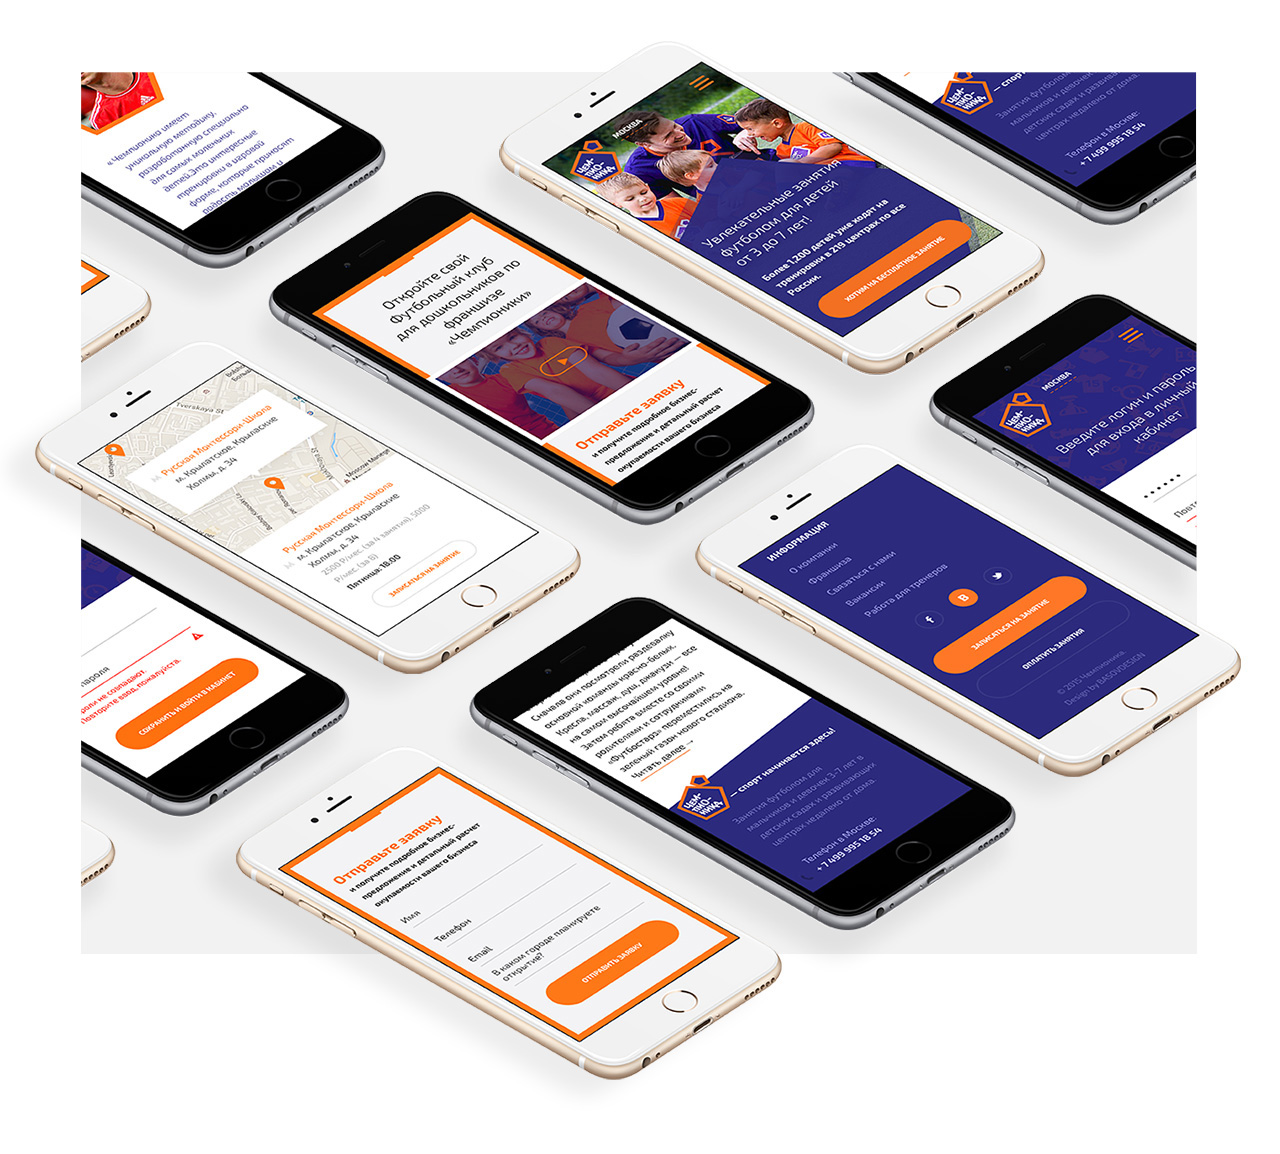 12_championika_website_responsive_mobile_iphone_branding_basov